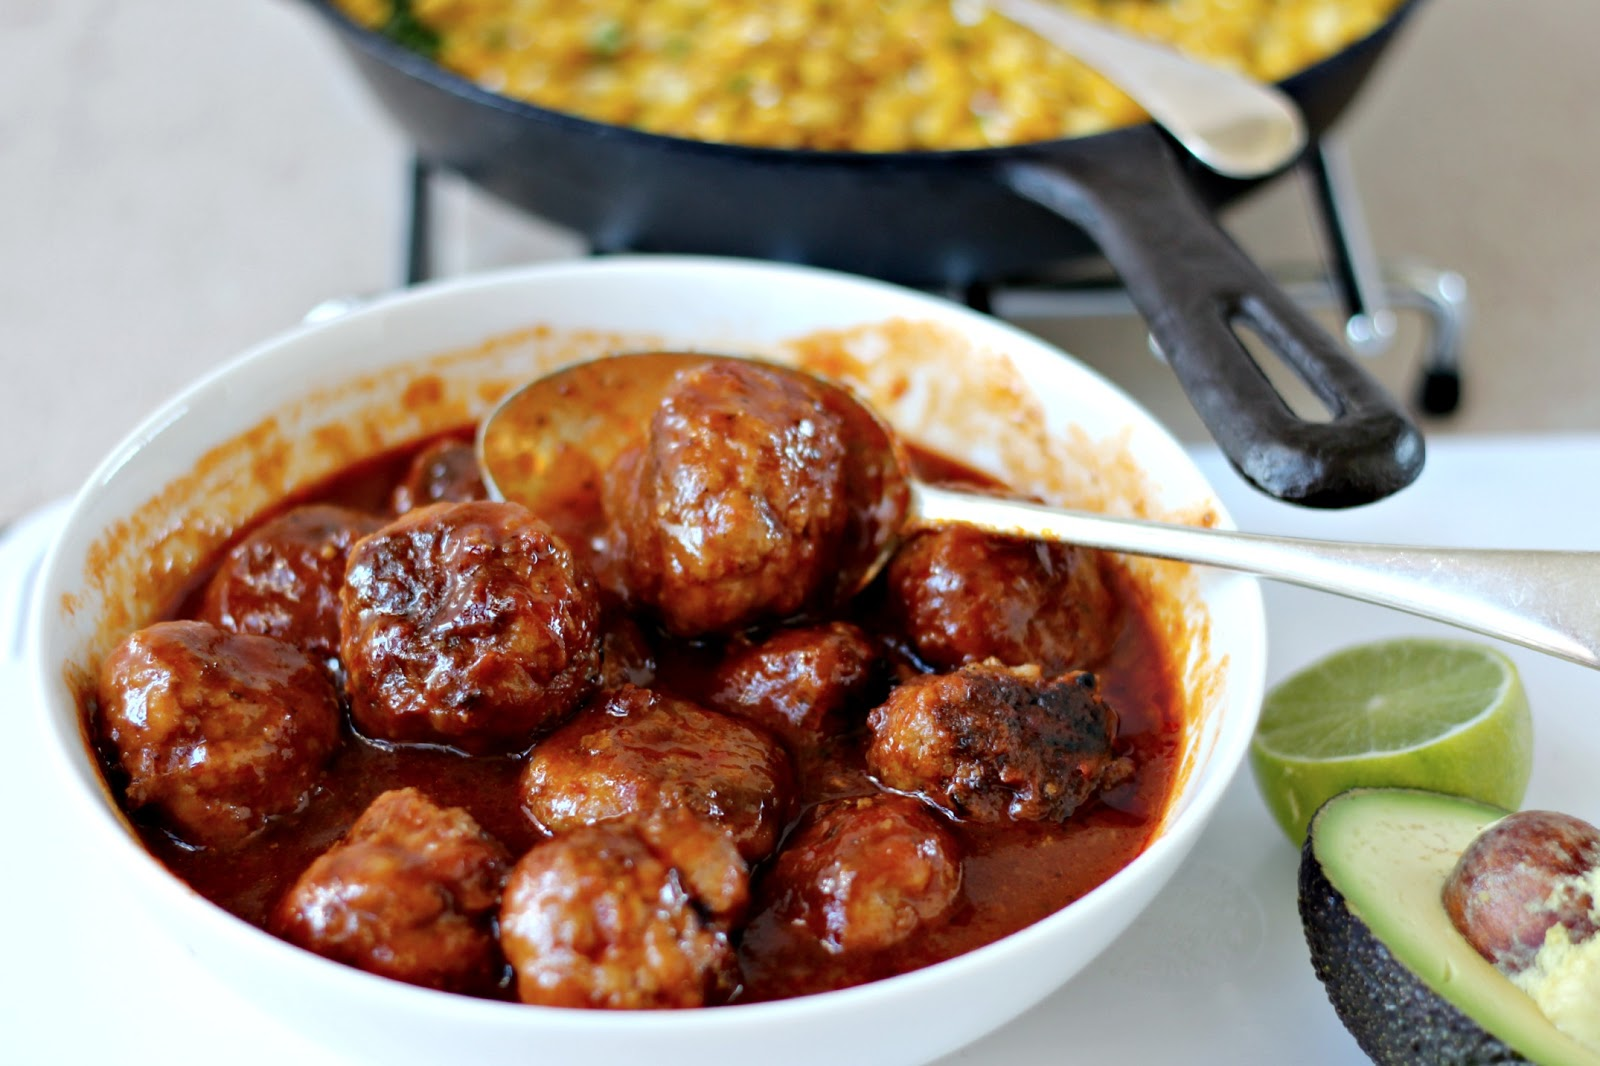 Milk and Honey: Meatballs in Barbecue Sauce